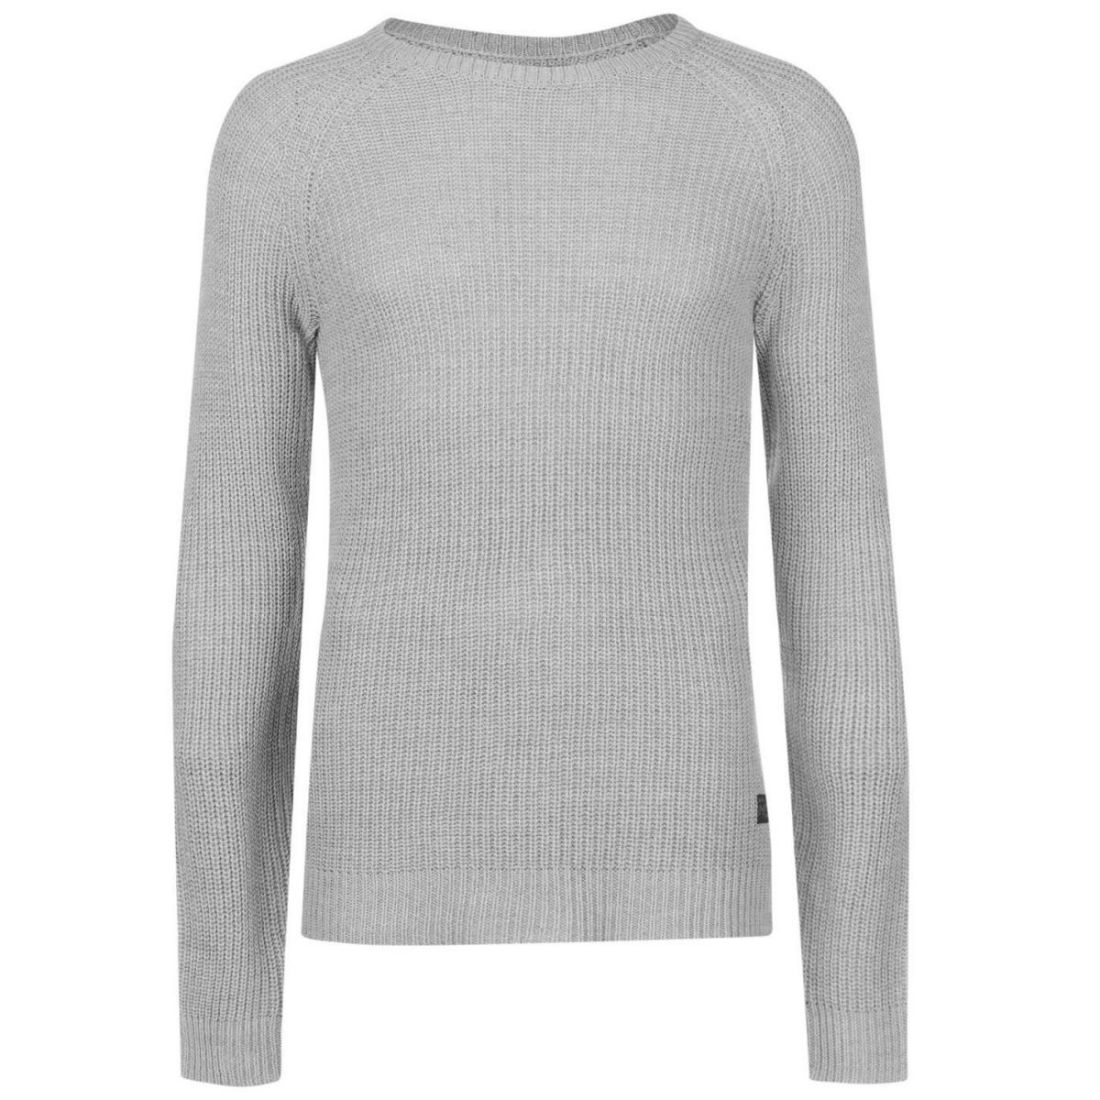 5b0488fb0f20 Jack and Jones Mens Original Panel Sweatshirt Lined Knitwear T Shirt Top  Jumper